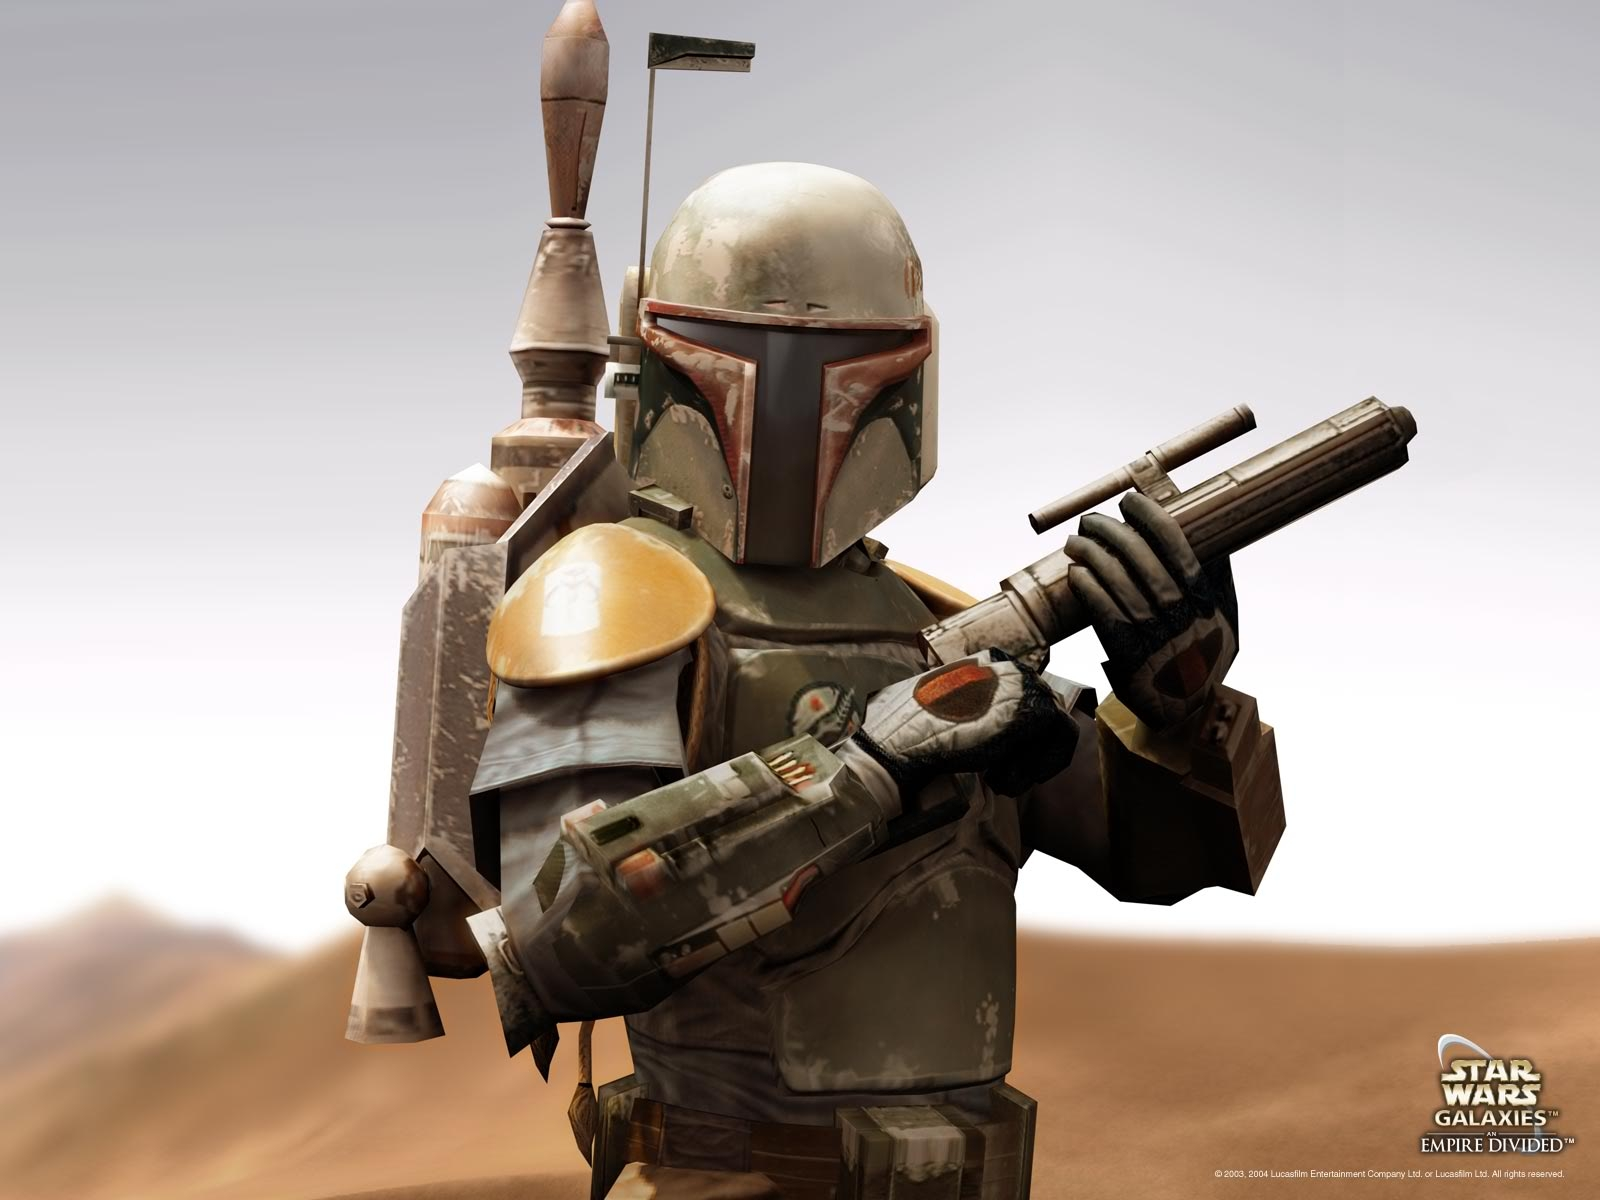 Star Wars Galaxies Boba Fett Wallpaperjpg 1600x1200